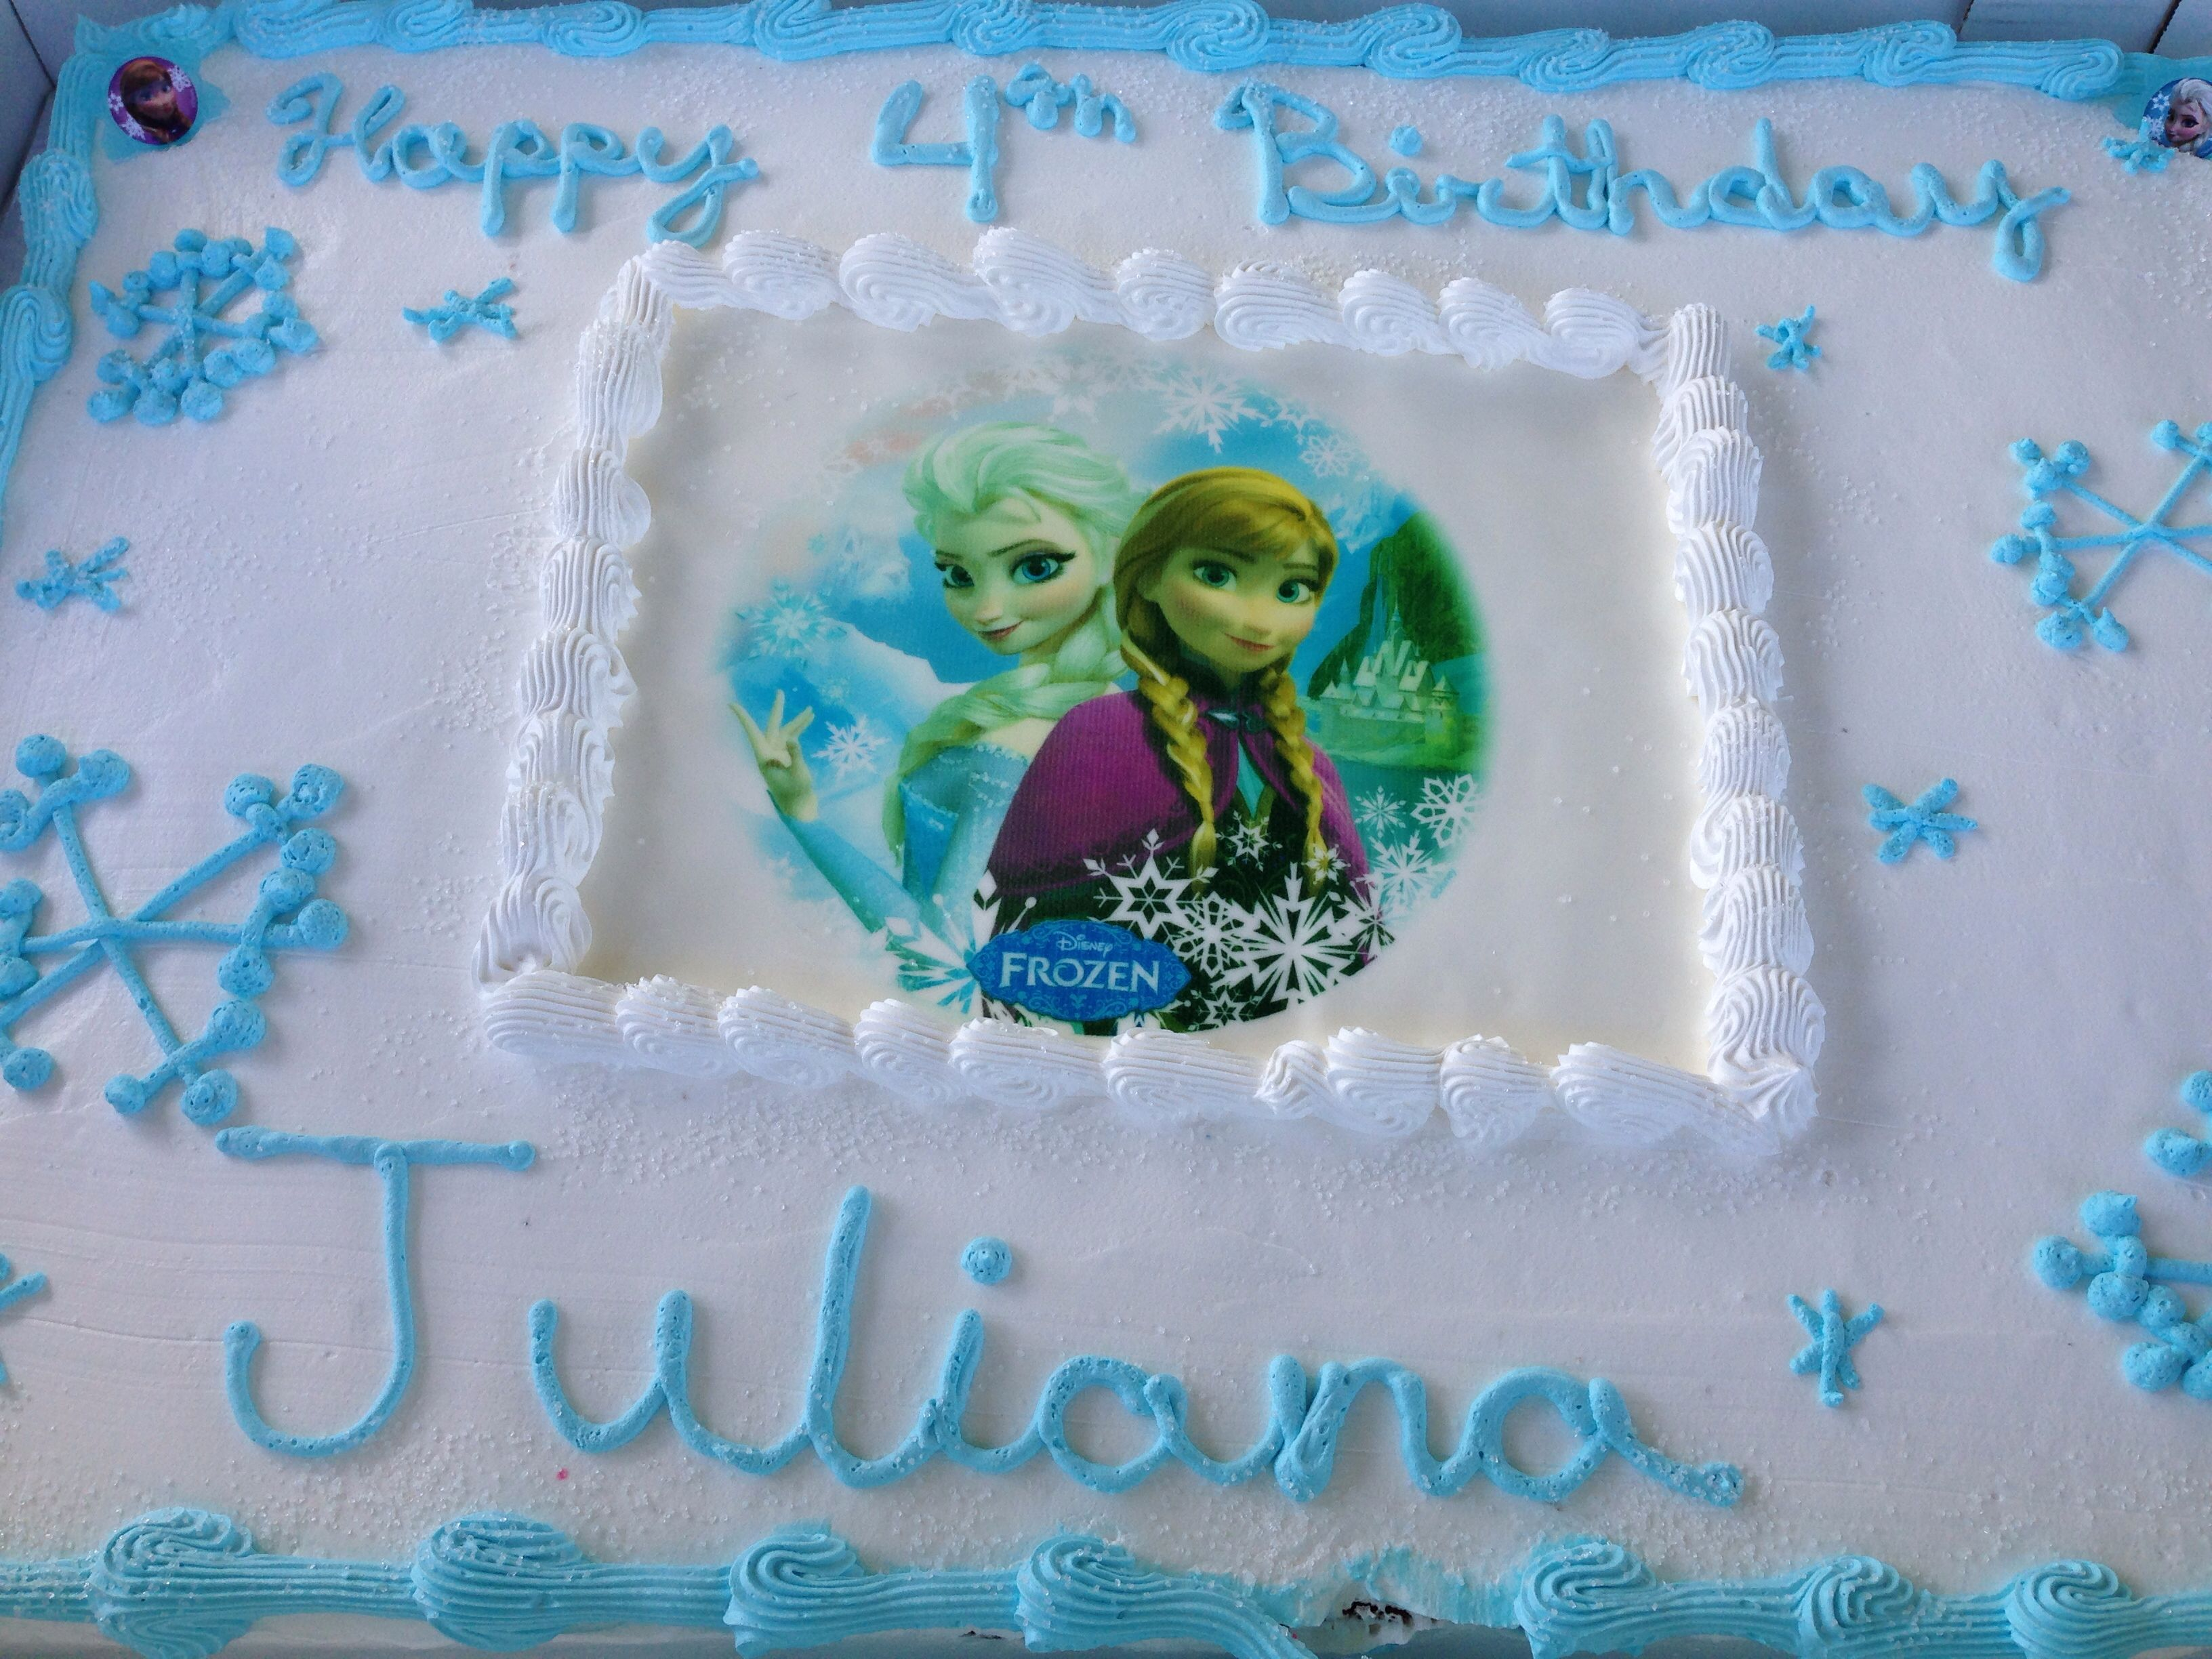 Frozen Cake By Hannaford Frozen Cake Birthday Cake Pictures Cake Decorating